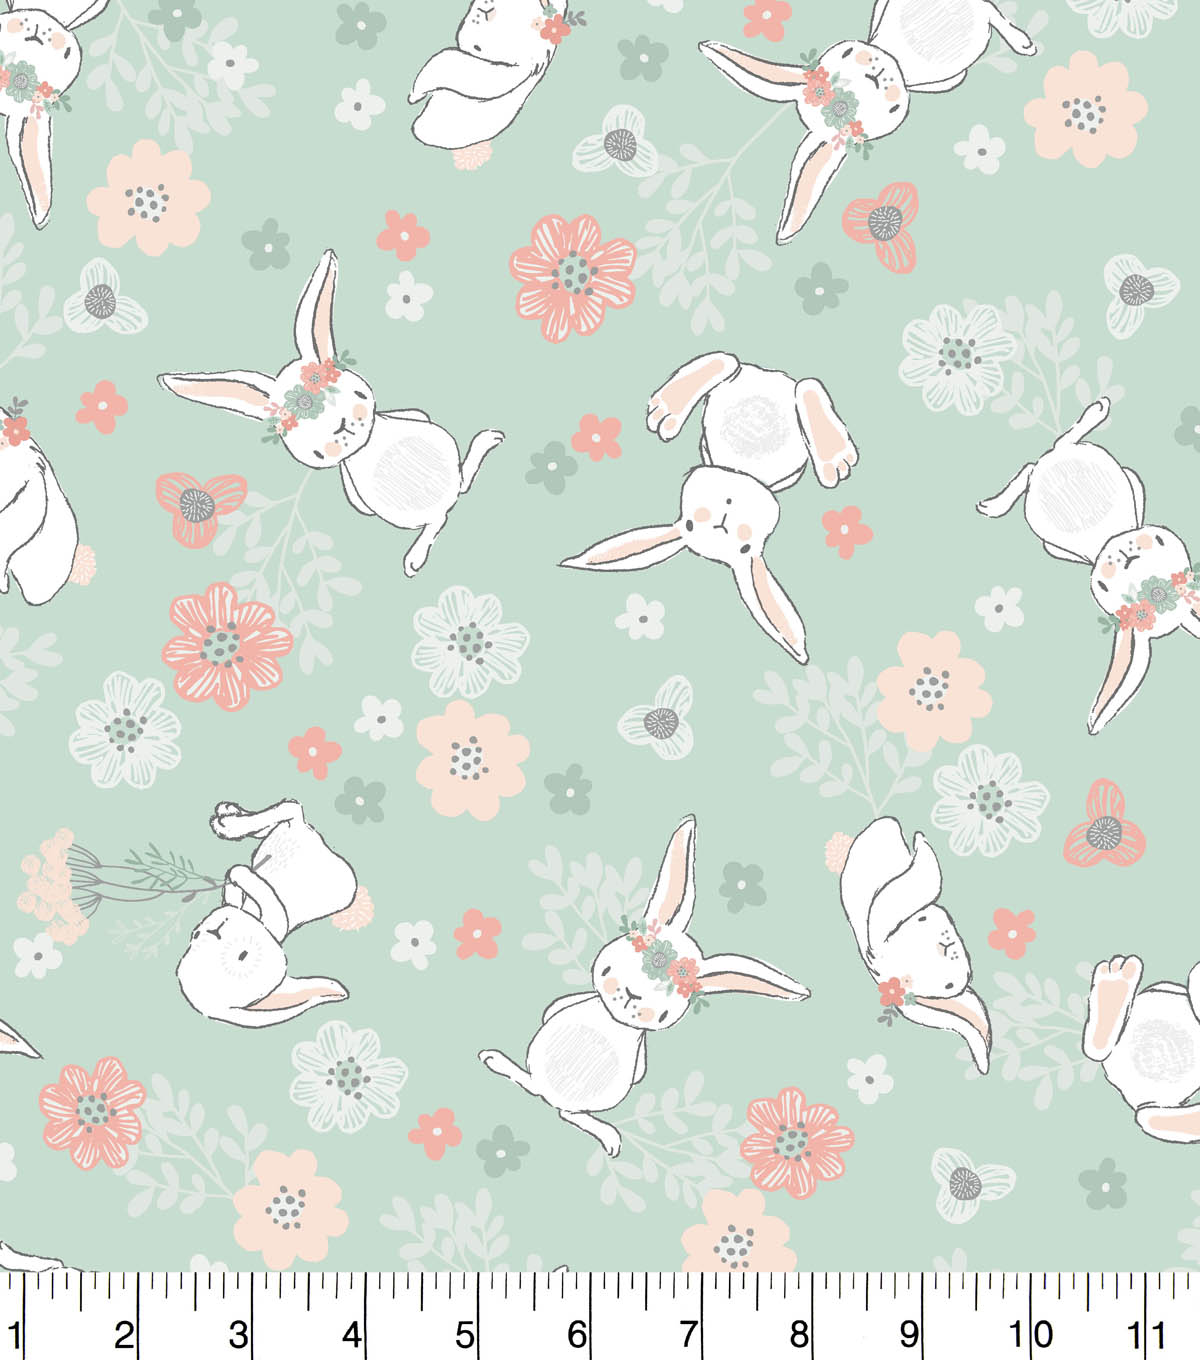 Nursery Flannel Fabric  Tossed Bunny